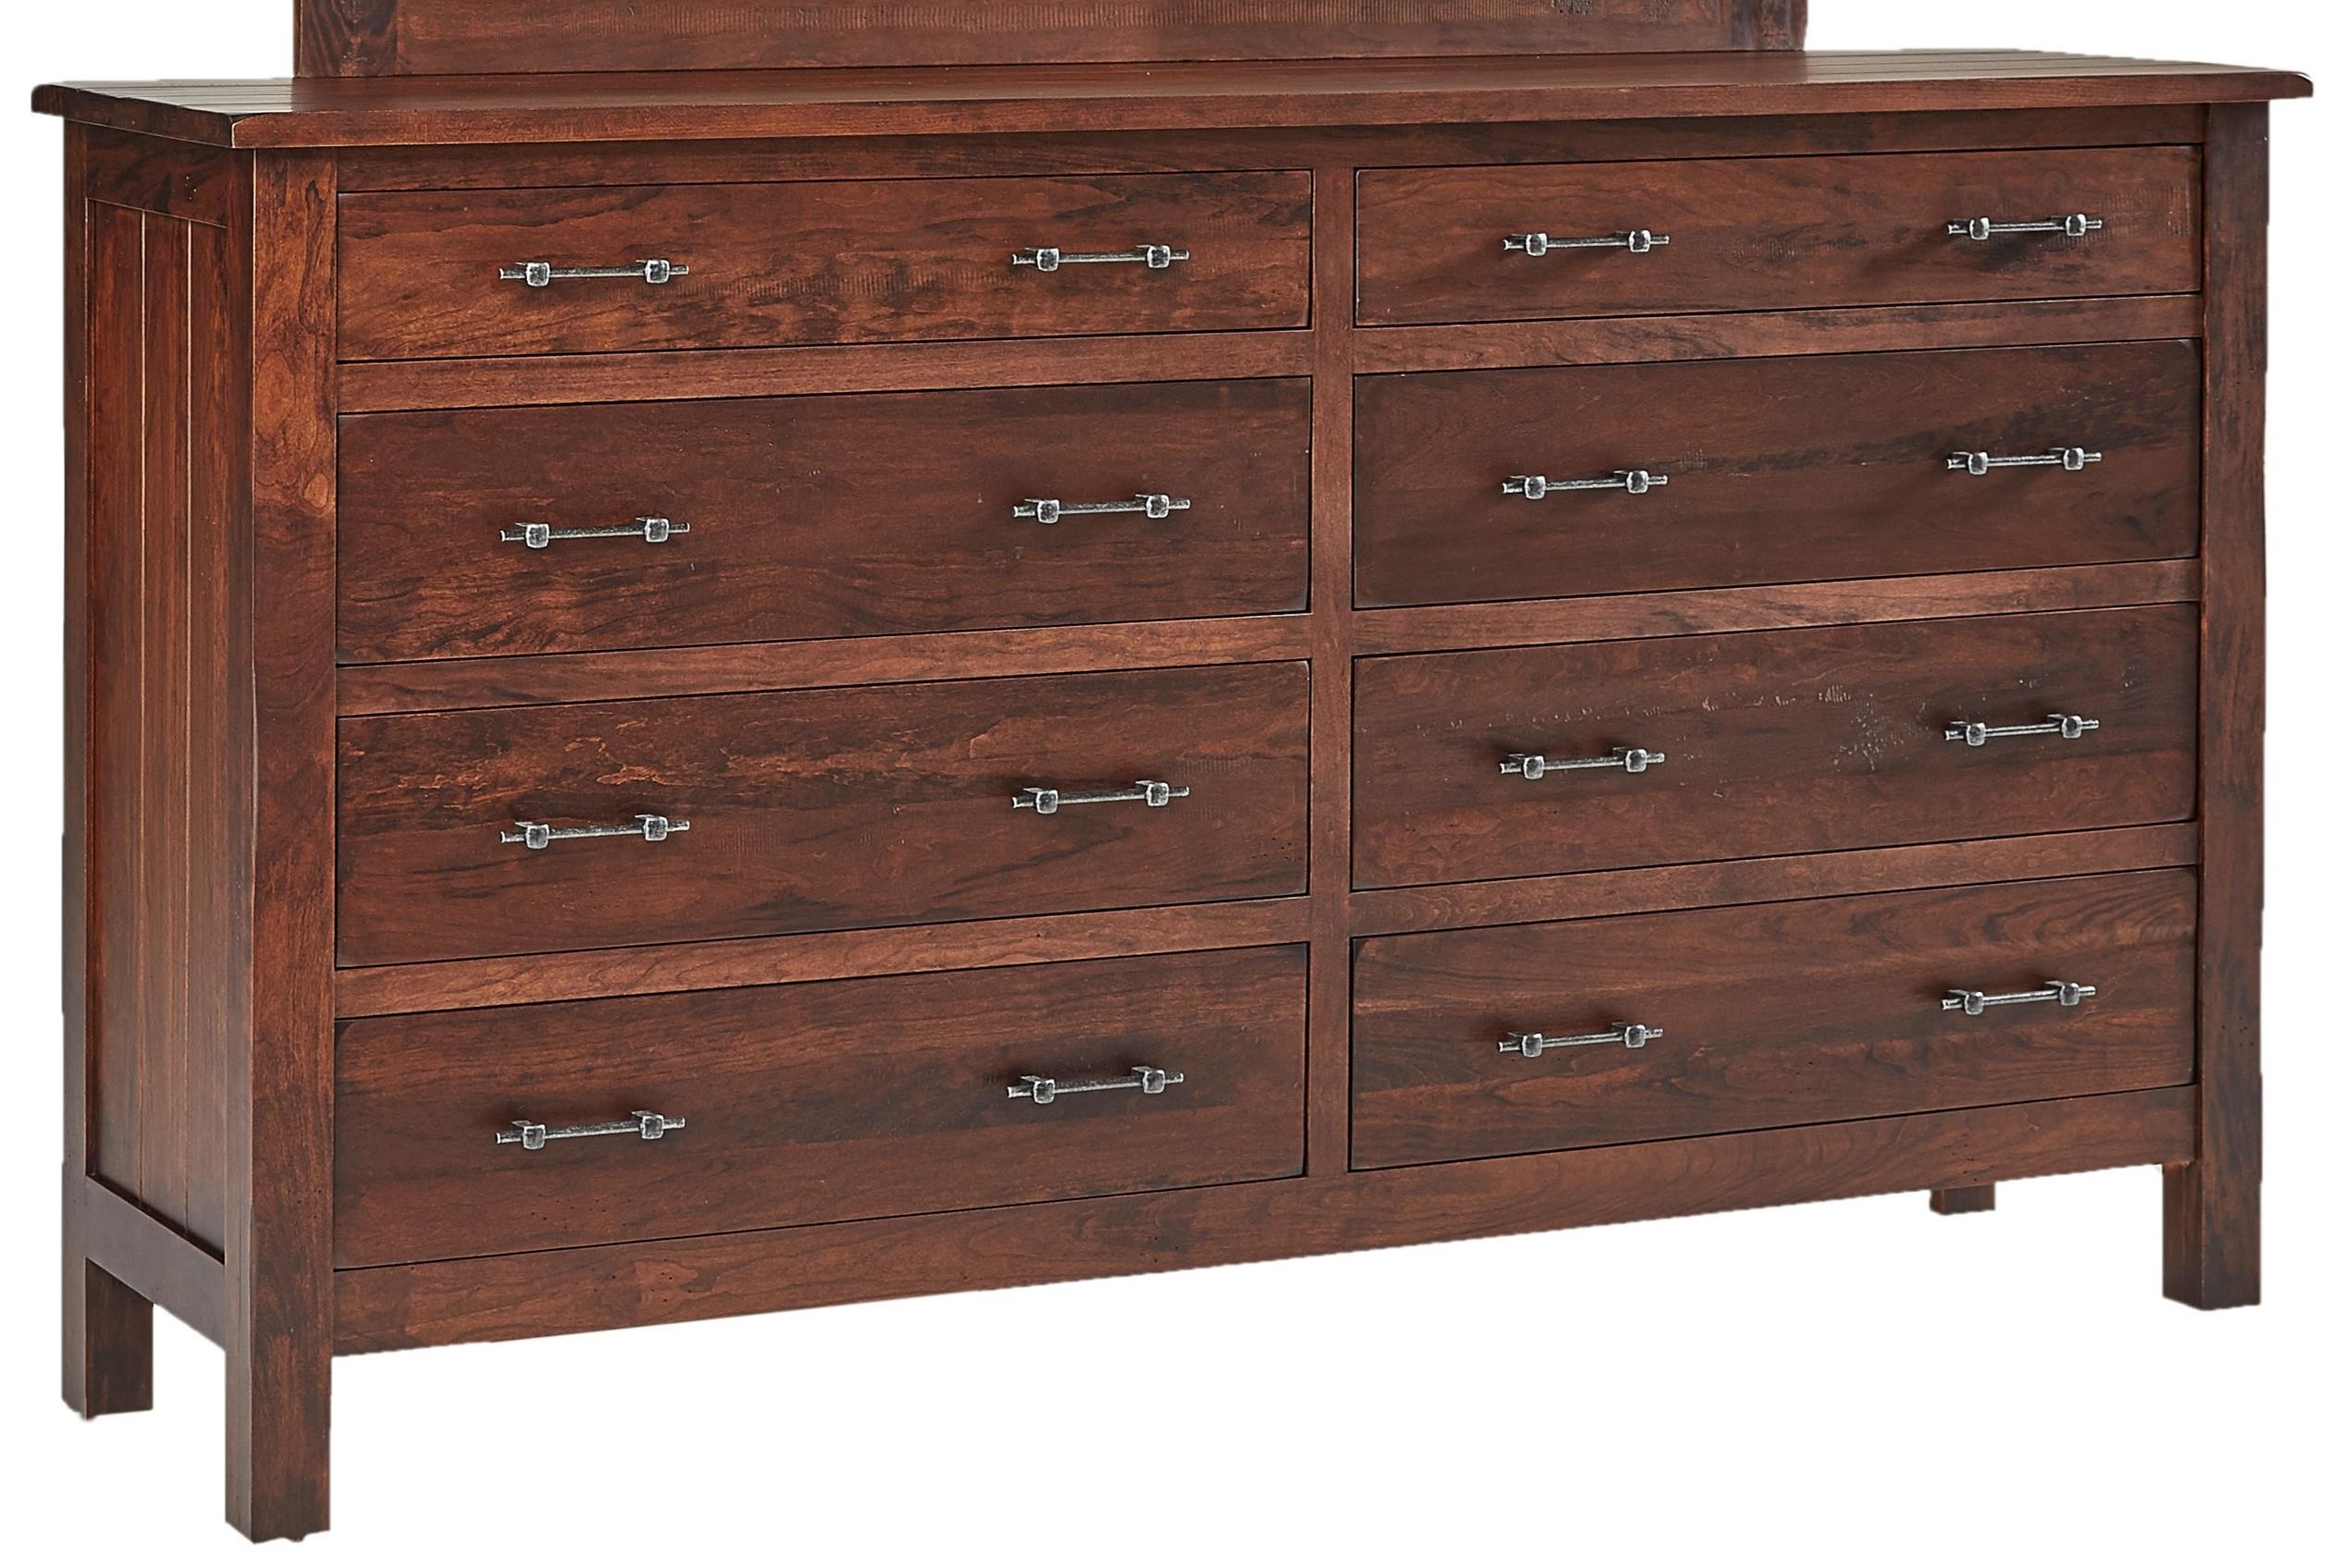 Bryson Dresser by Daniel's Amish at Saugerties Furniture Mart